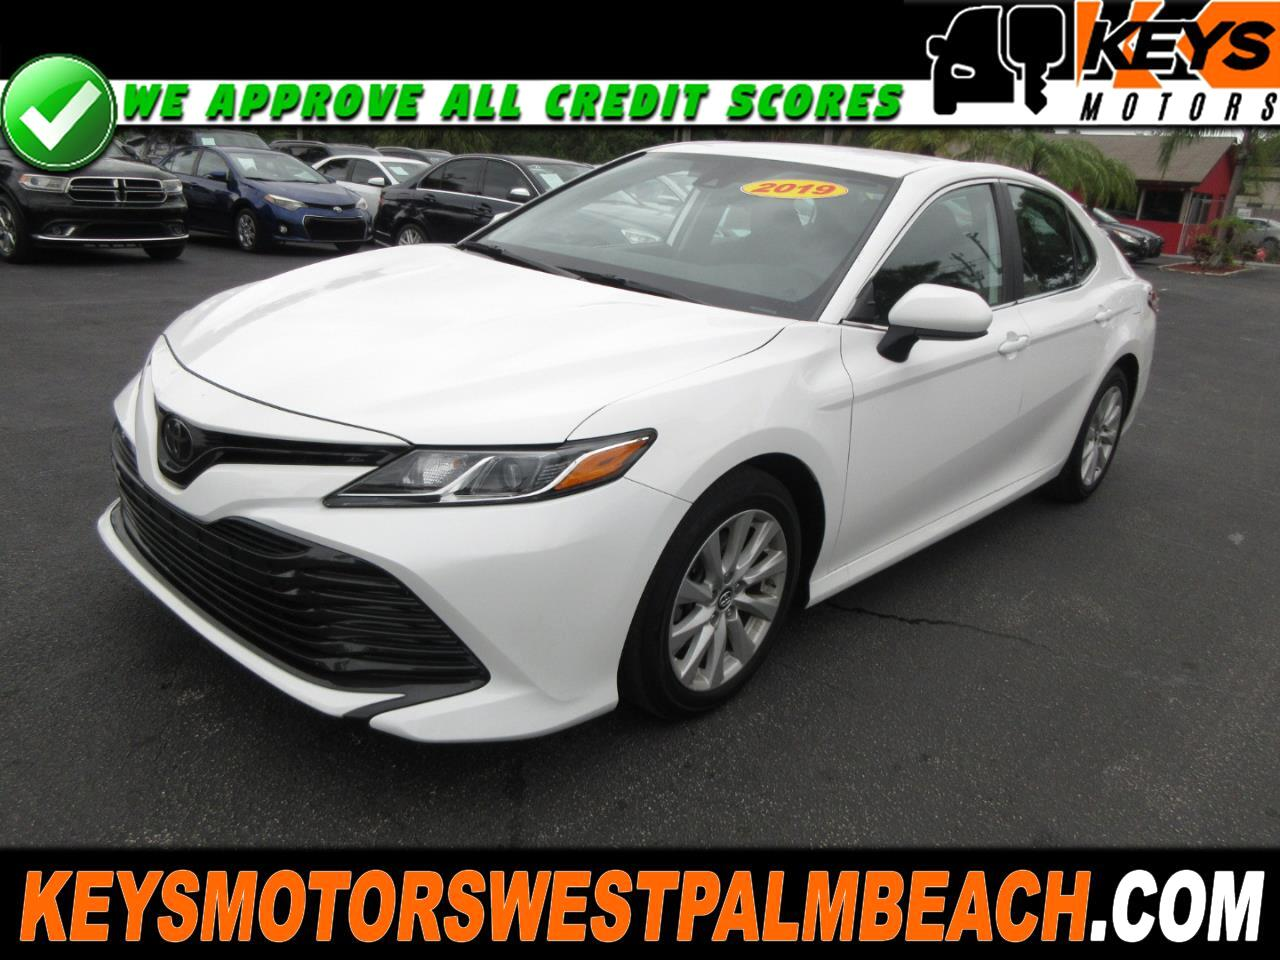 2019 Toyota Camry 4dr Sdn I4 Auto LE (Natl)